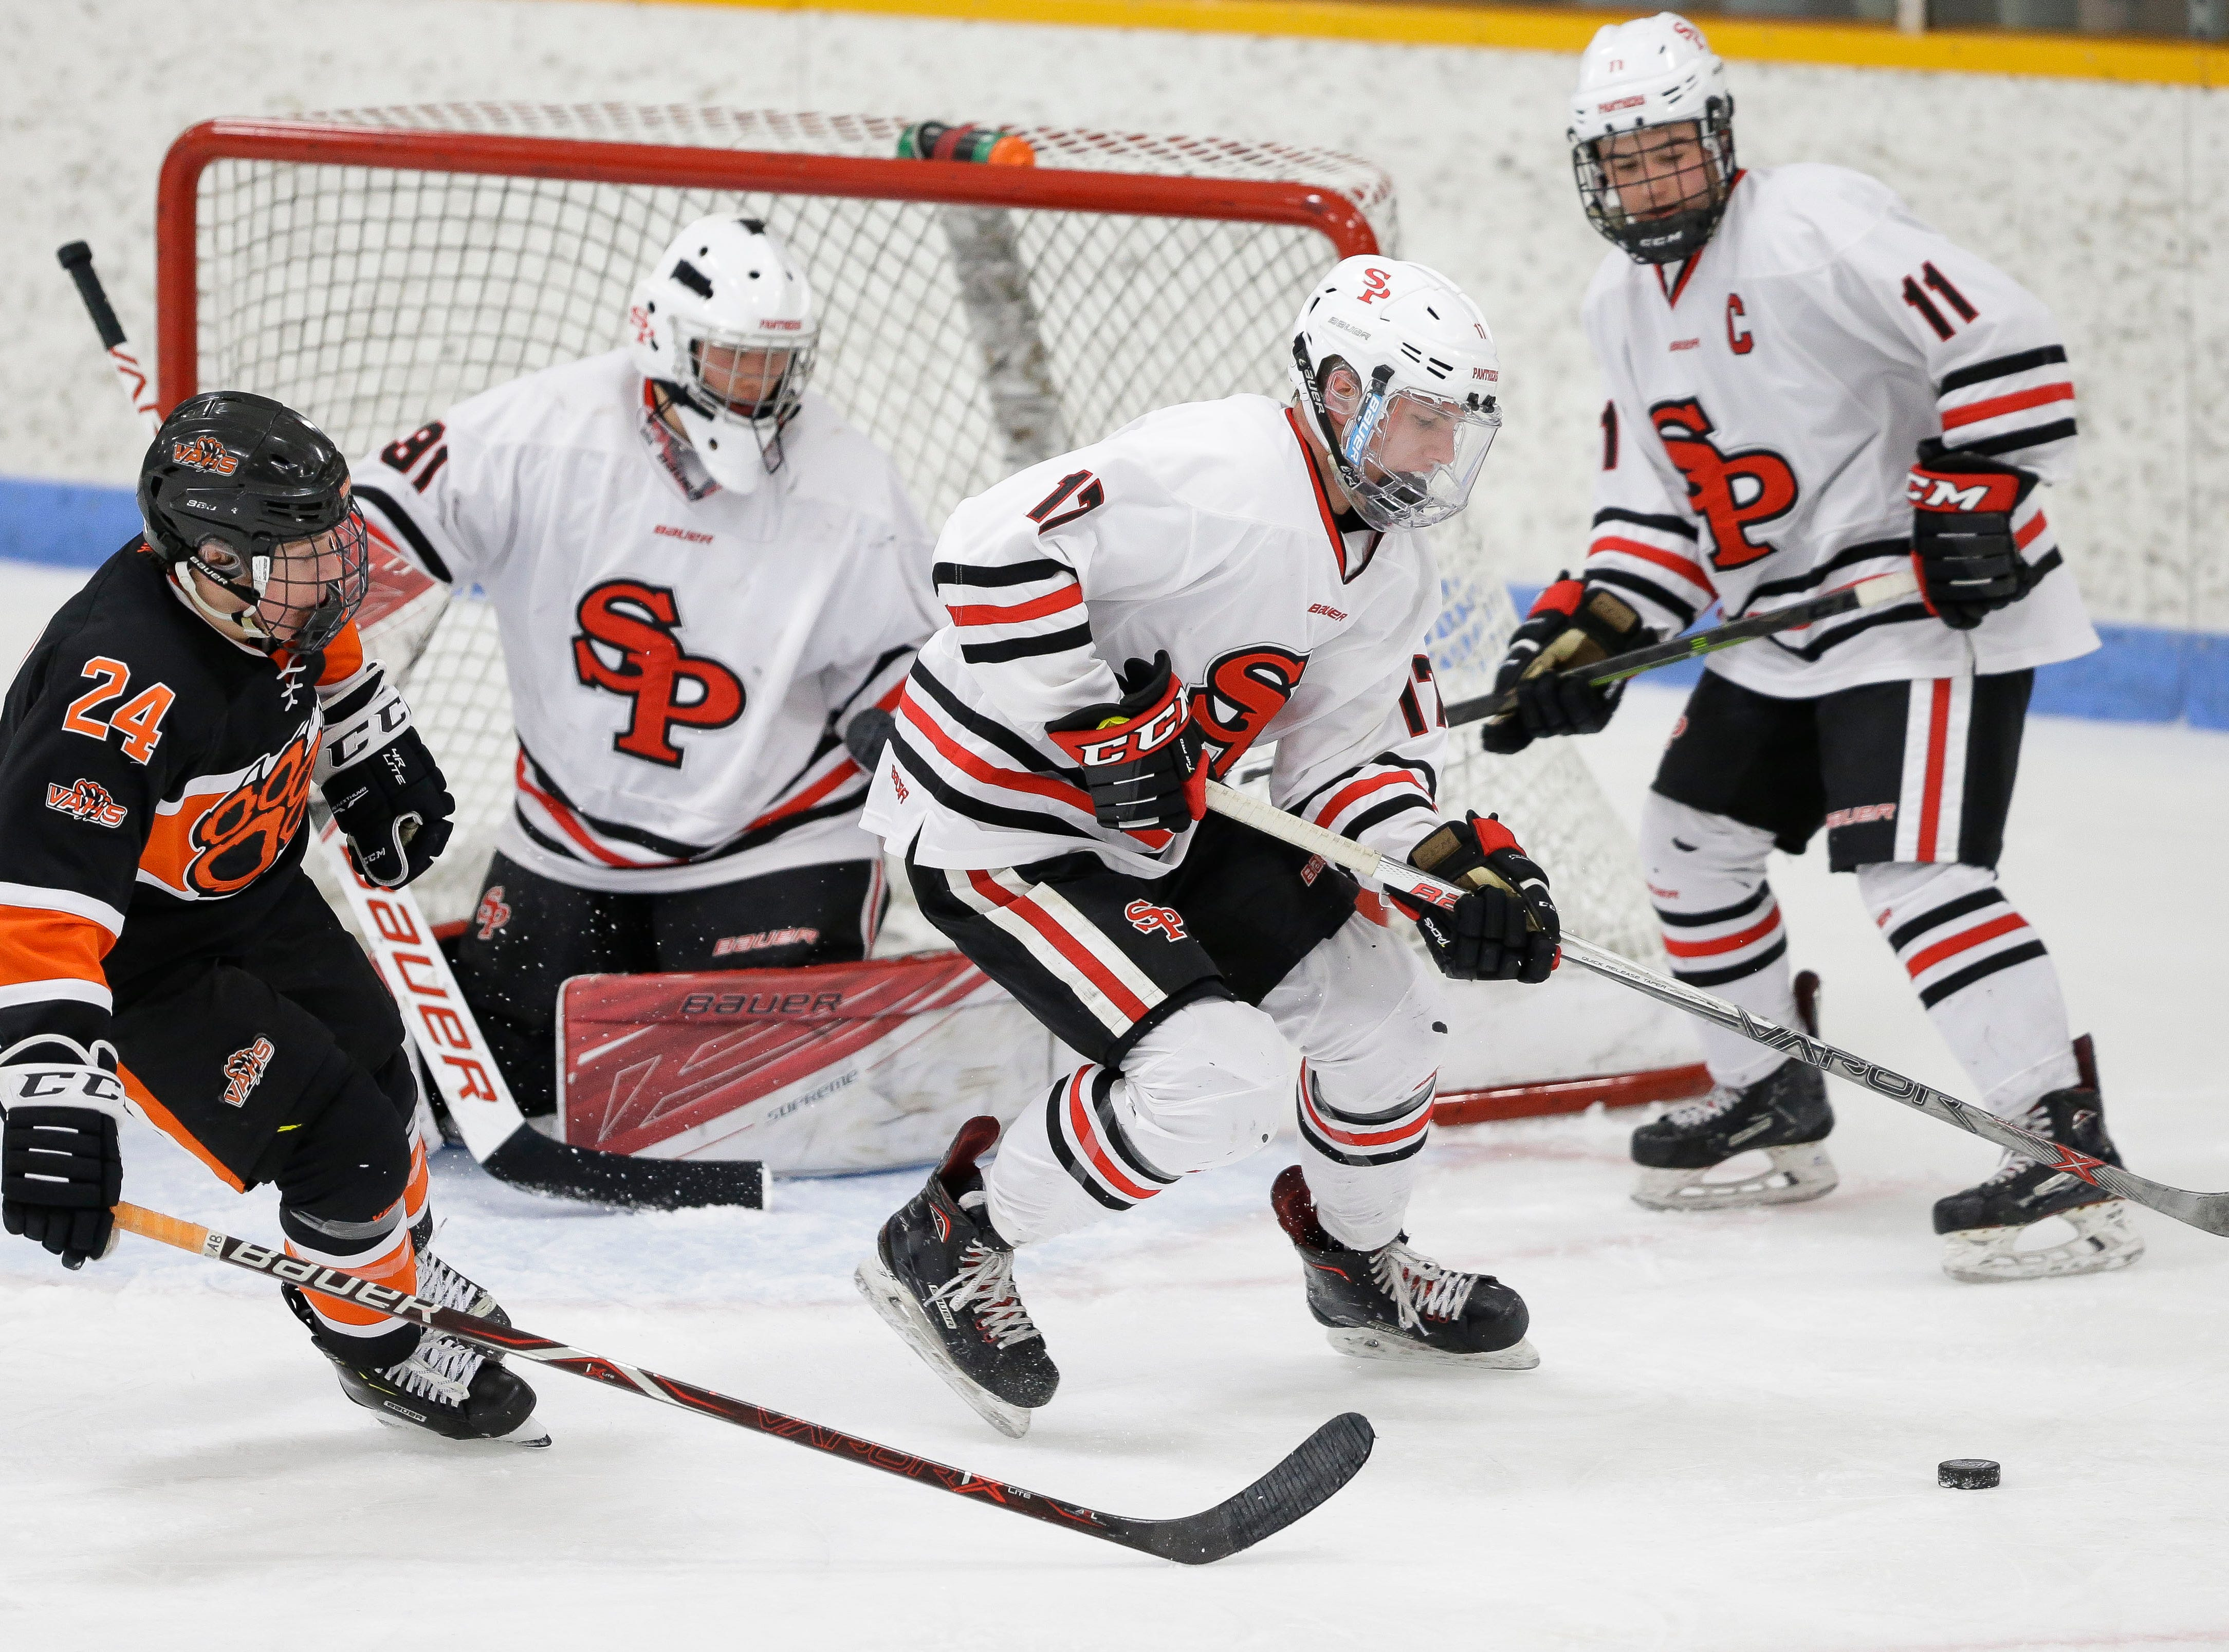 SPASH's Cole Beilke (17) handles the puck in front of his own net against Verona on Saturday, January 26, 2019, at K.B. Willett Ice Arena in Stevens Point, Wis. Tork Mason/USA TODAY NETWORK-Wisconsin